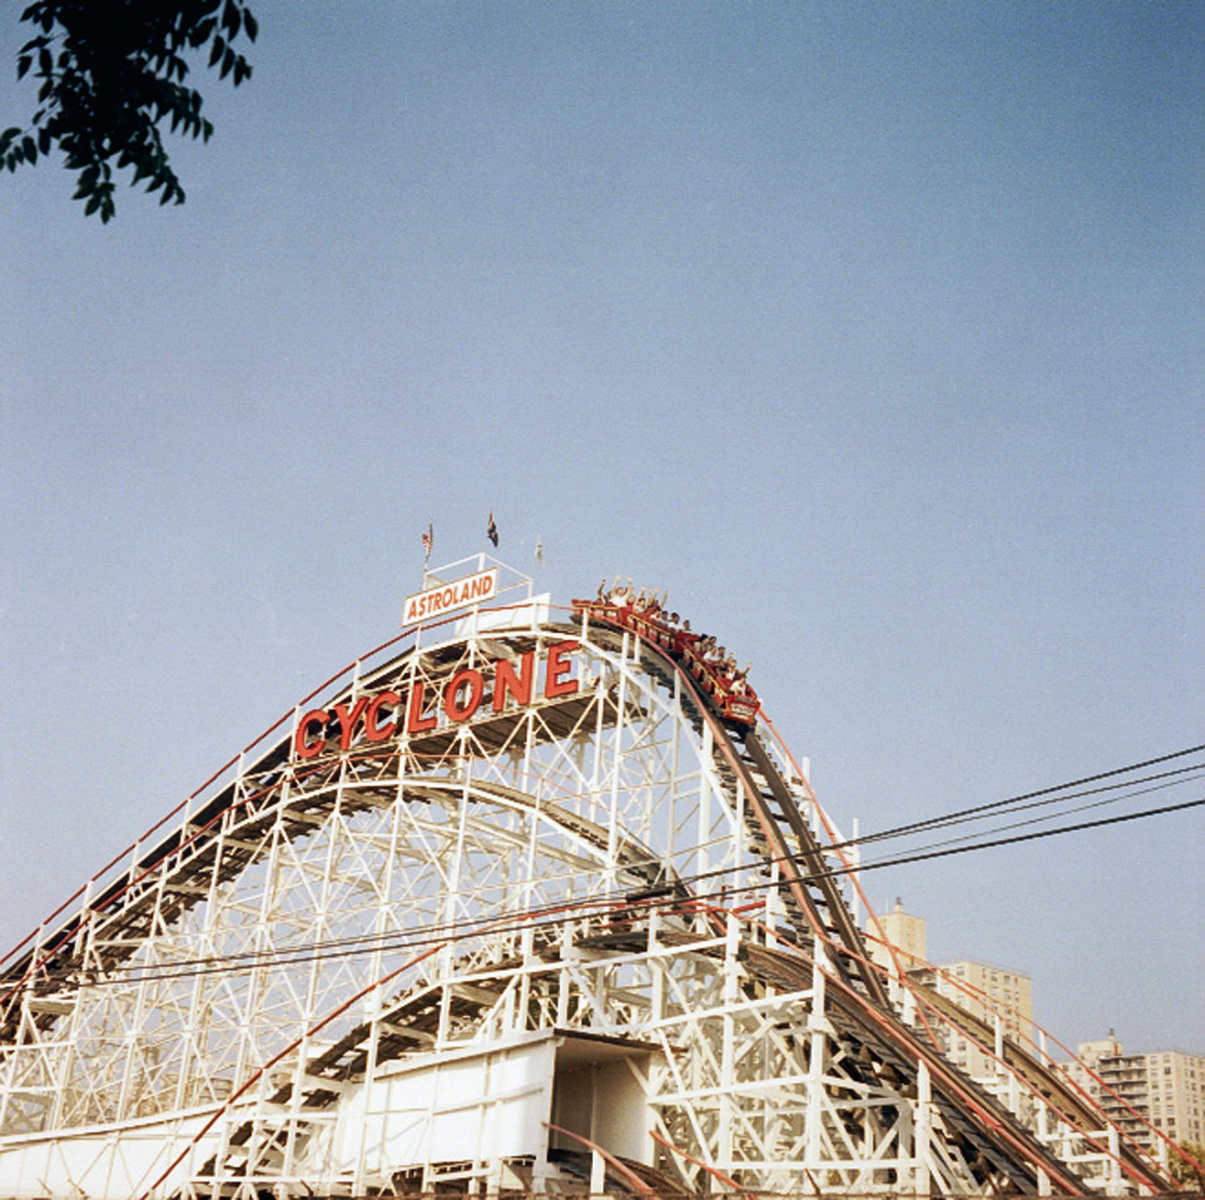 Cyclone, Coney Island NYC